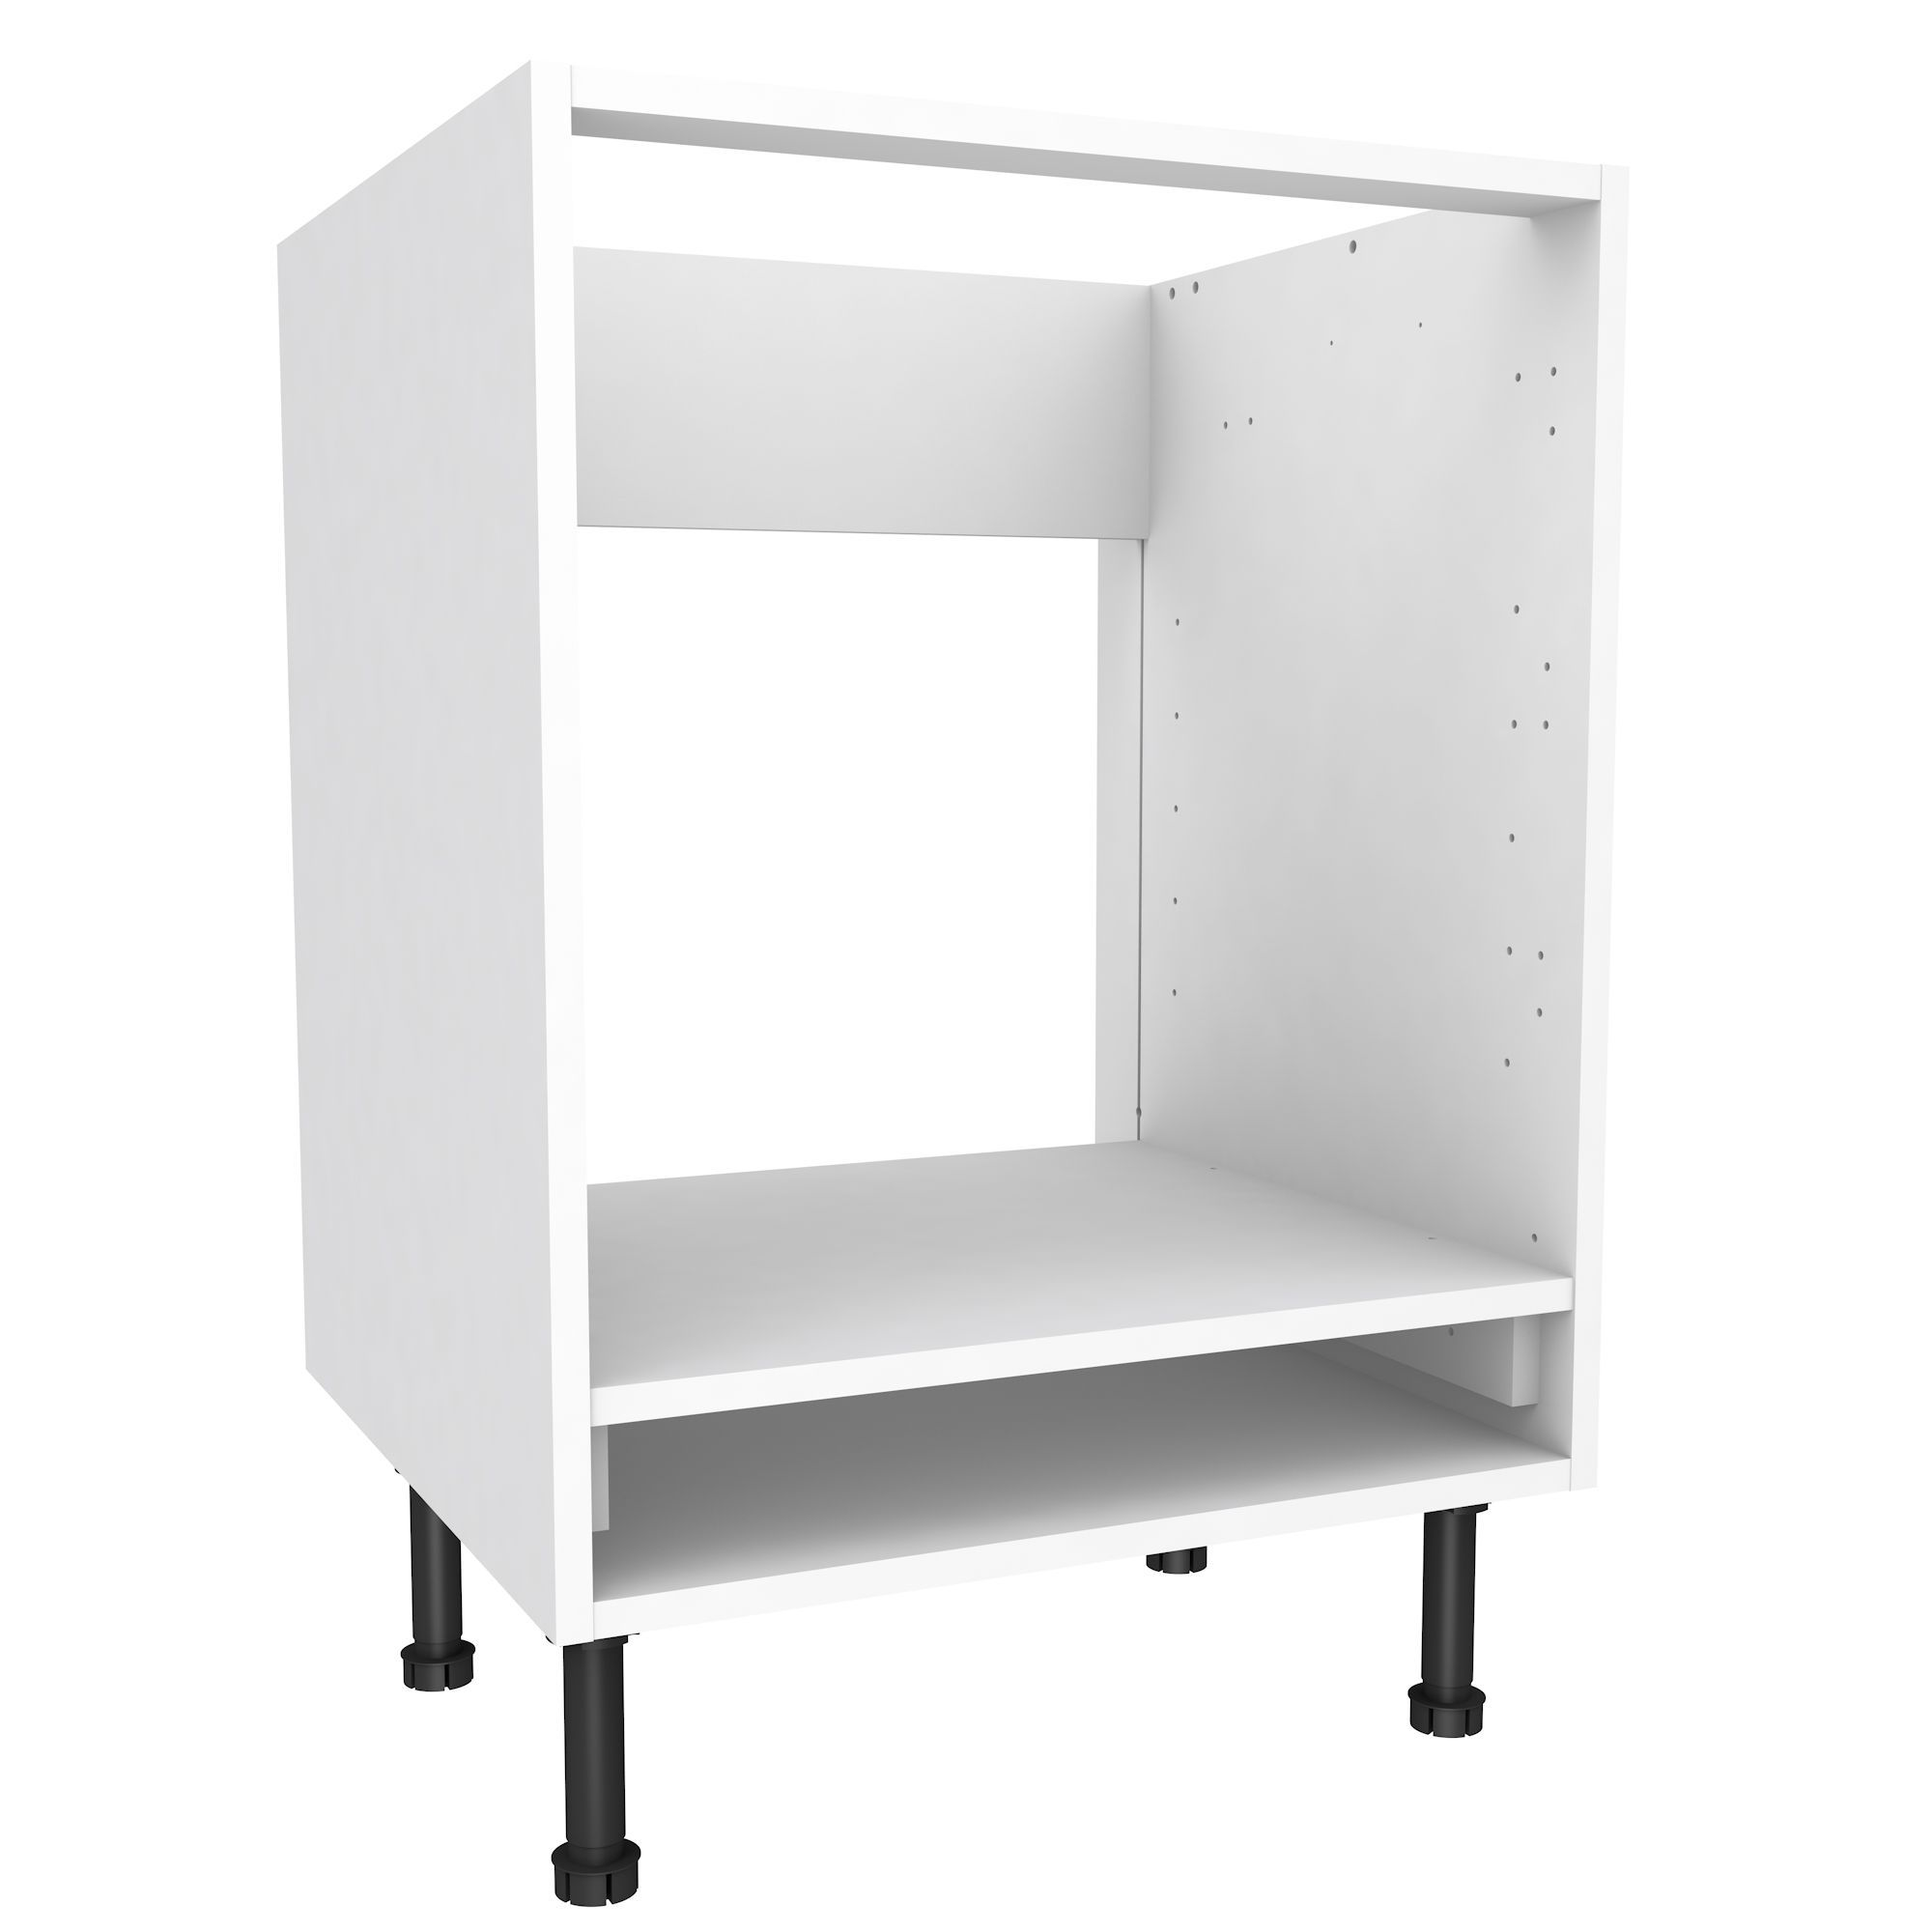 Cooke & Lewis White Oven Housing Base Cabinet (W)600mm | Base ...